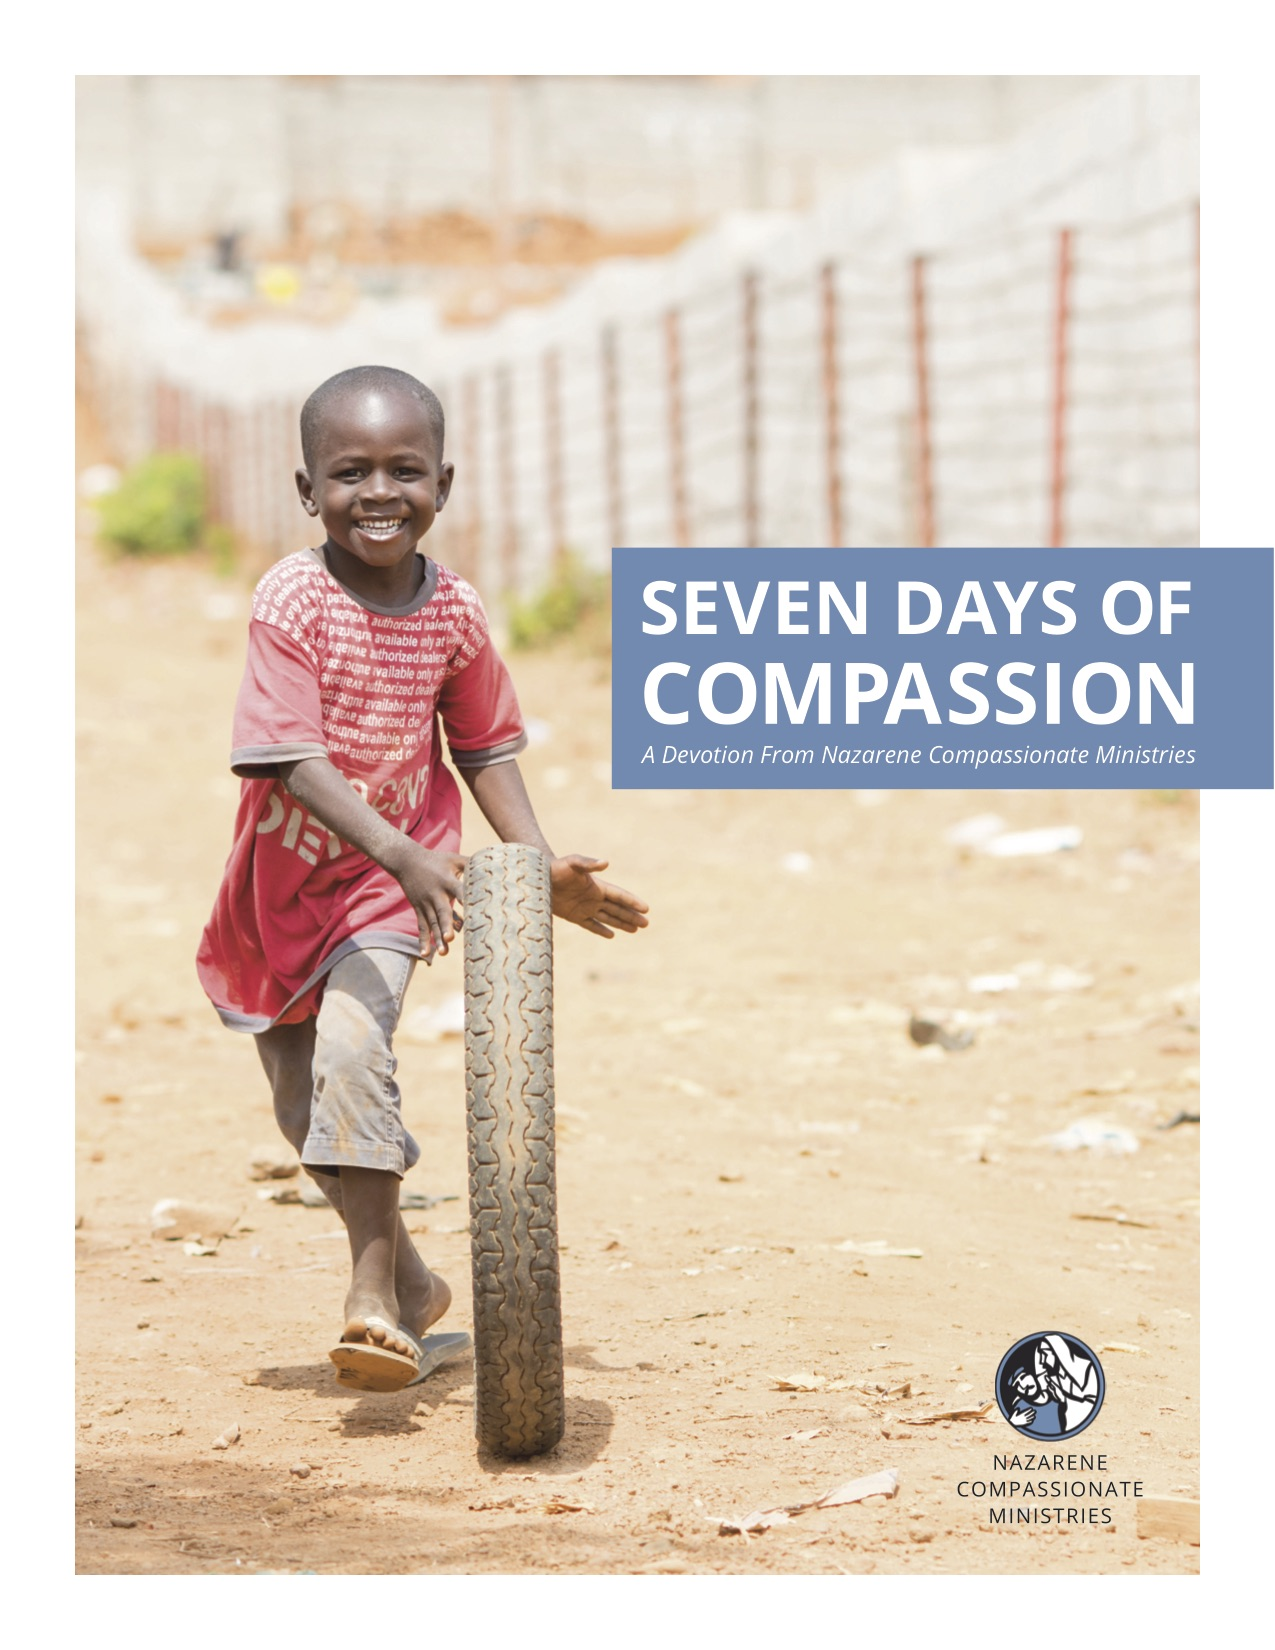 NCM_7 Days of Compassion_Devotional copy.jpg